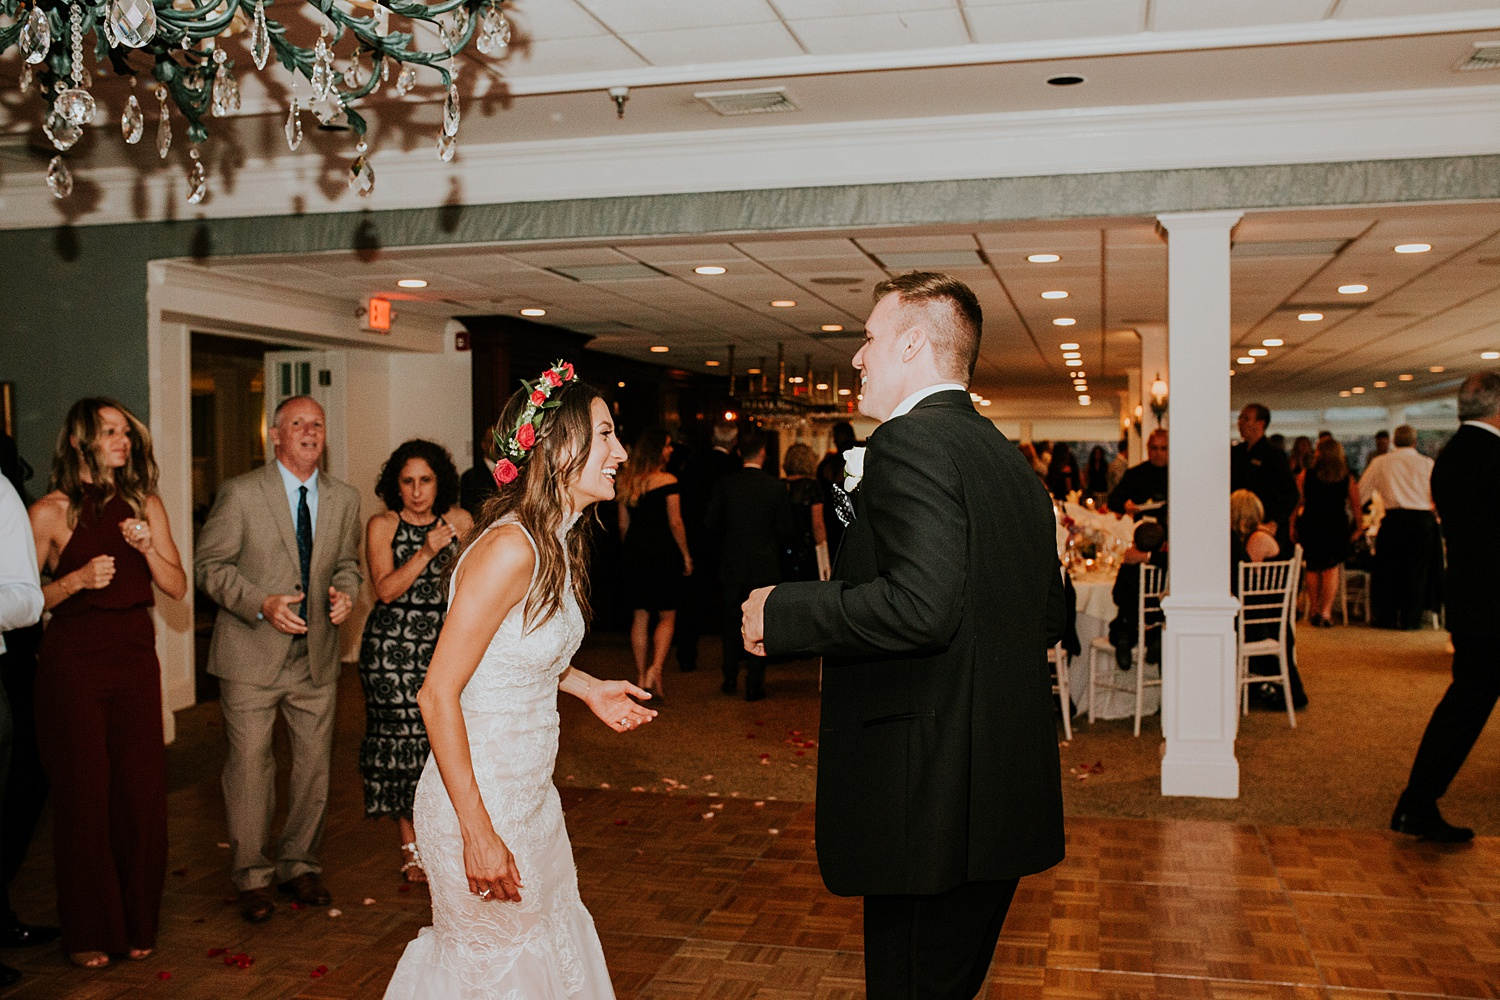 the north shore country club wedding, the north shore country club wedding photos, the north shore country club wedding vendors, the north shore country club wedding photography, New York Wedding Photographers, New York Wedding Venues, LIC Wedding Venues, Ashley Izquierdo, New York Wedding Photography Ideas, Ashley Izquierdo, the north shore country club, the north shore country club New York,  Tampa Wedding Photographers, Tampa Wedding Photos